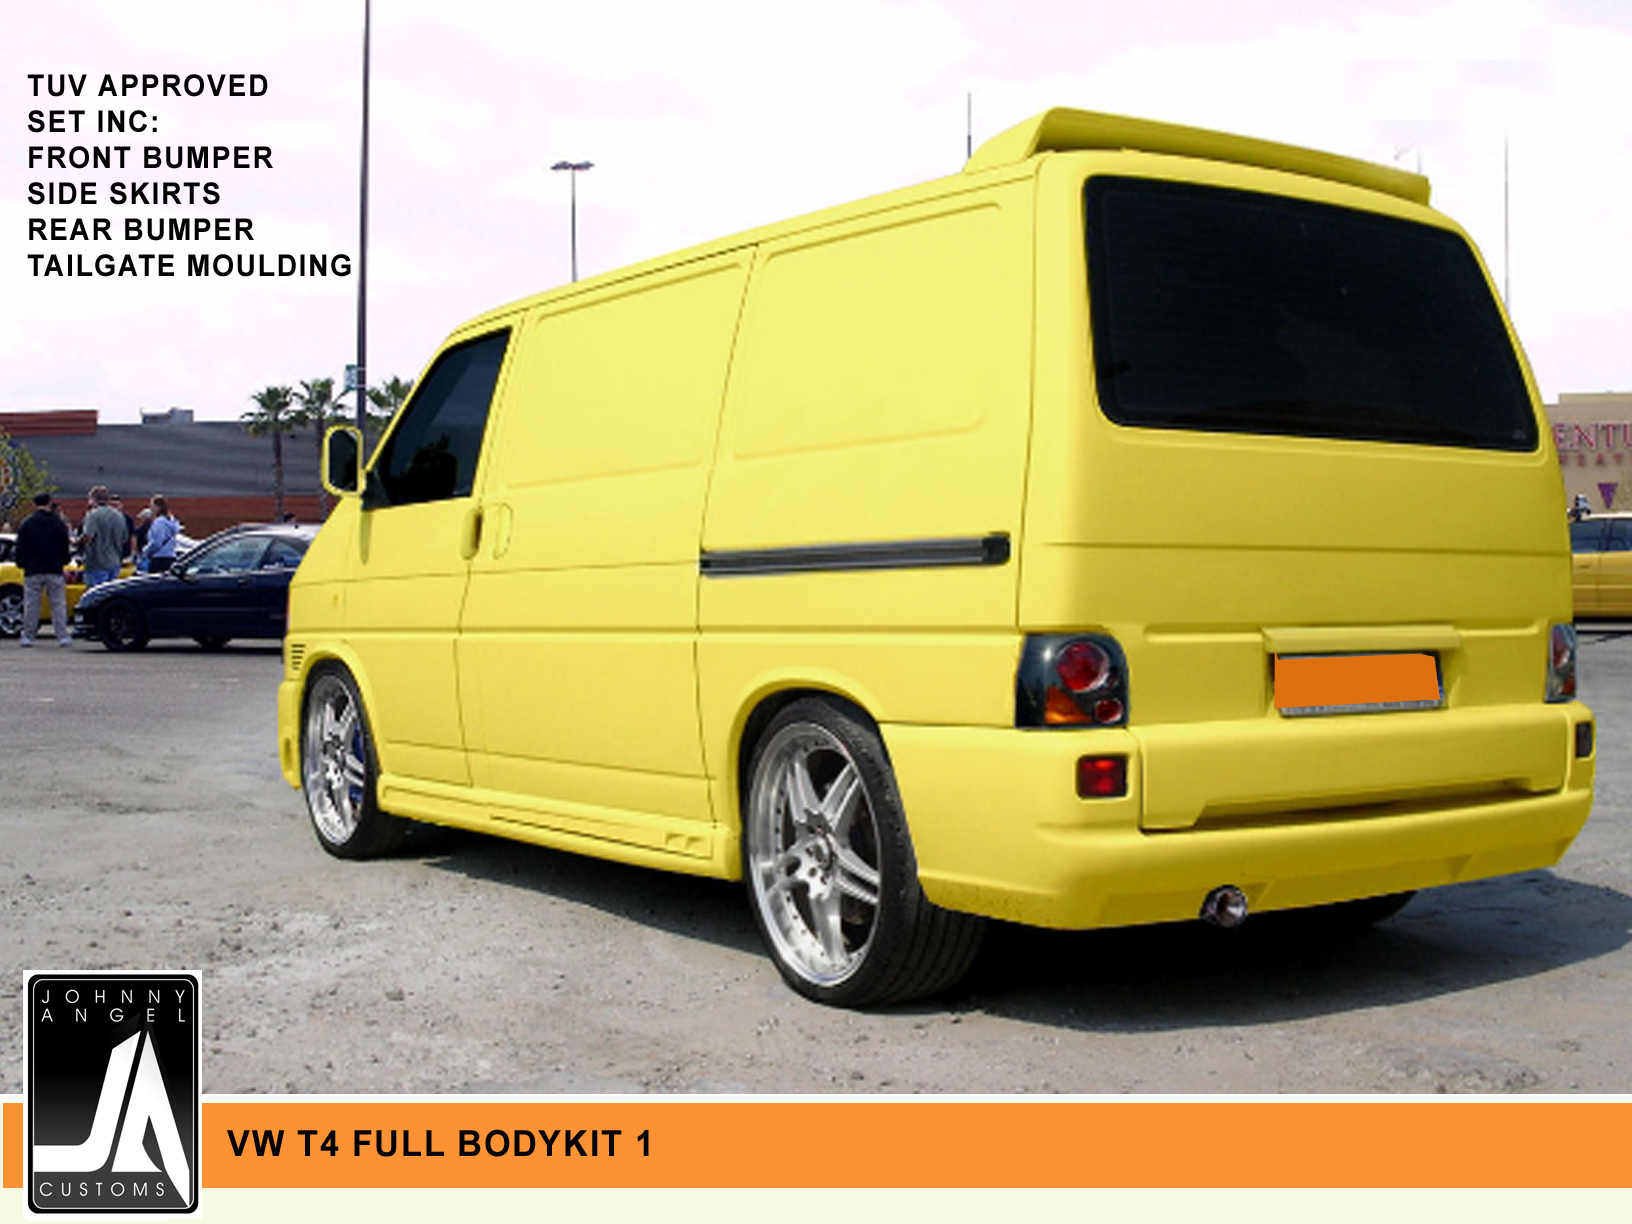 VW T4 FULL BODYKIT 1  Johnny Angel Customs pic 2